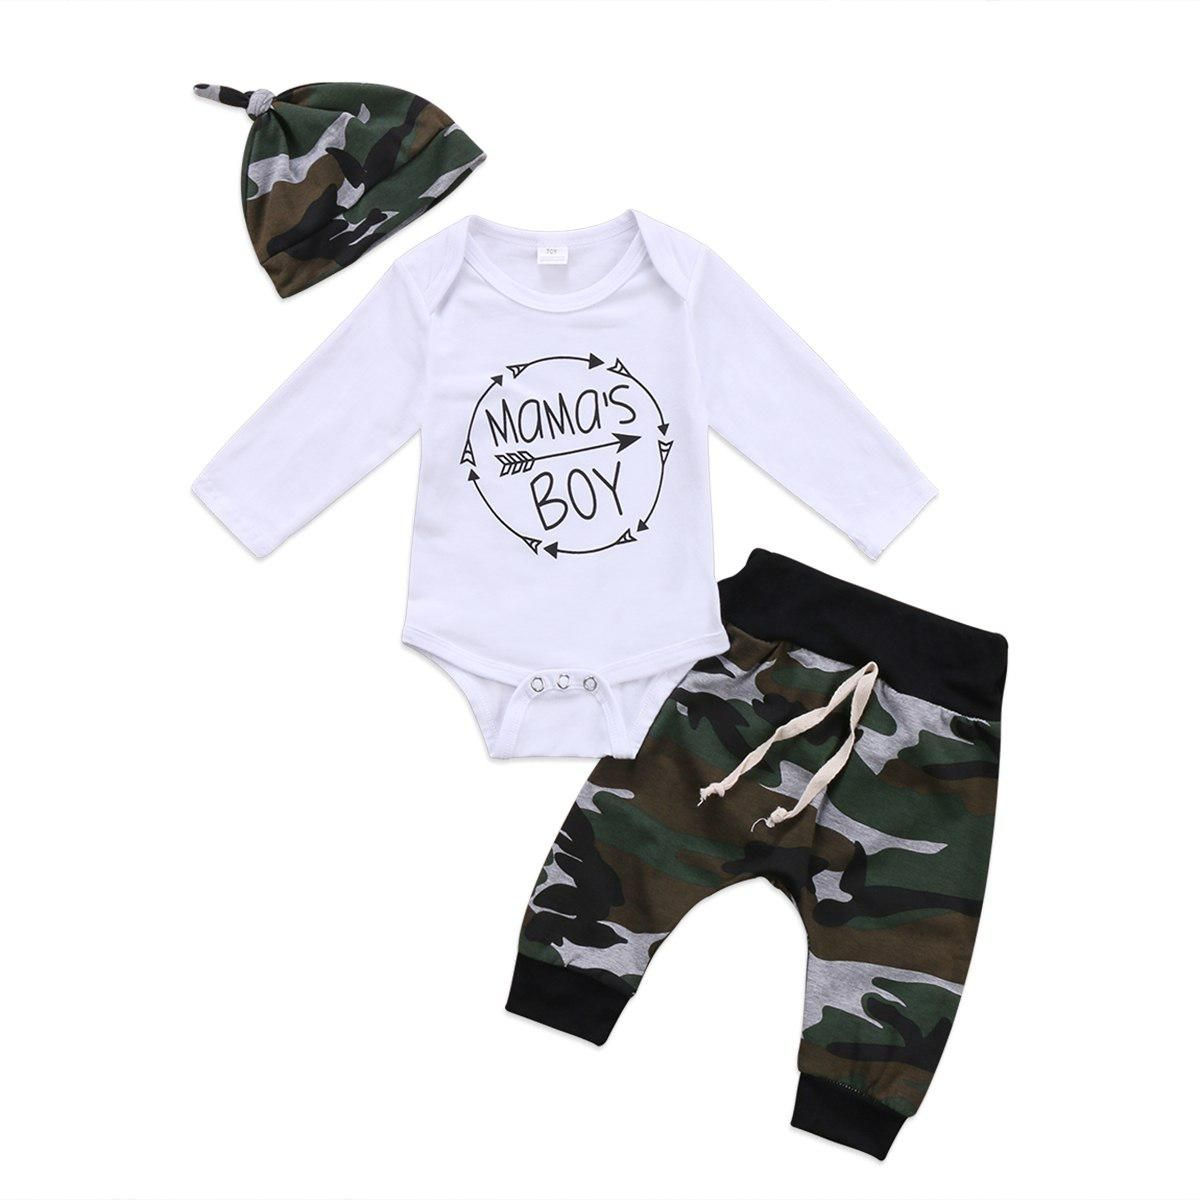 a0fcfb75e Newborn Infant Baby Letter Print Boys Romper Top Pants Hat 3Pcs Outfit Set  Clothes. Yesterday's